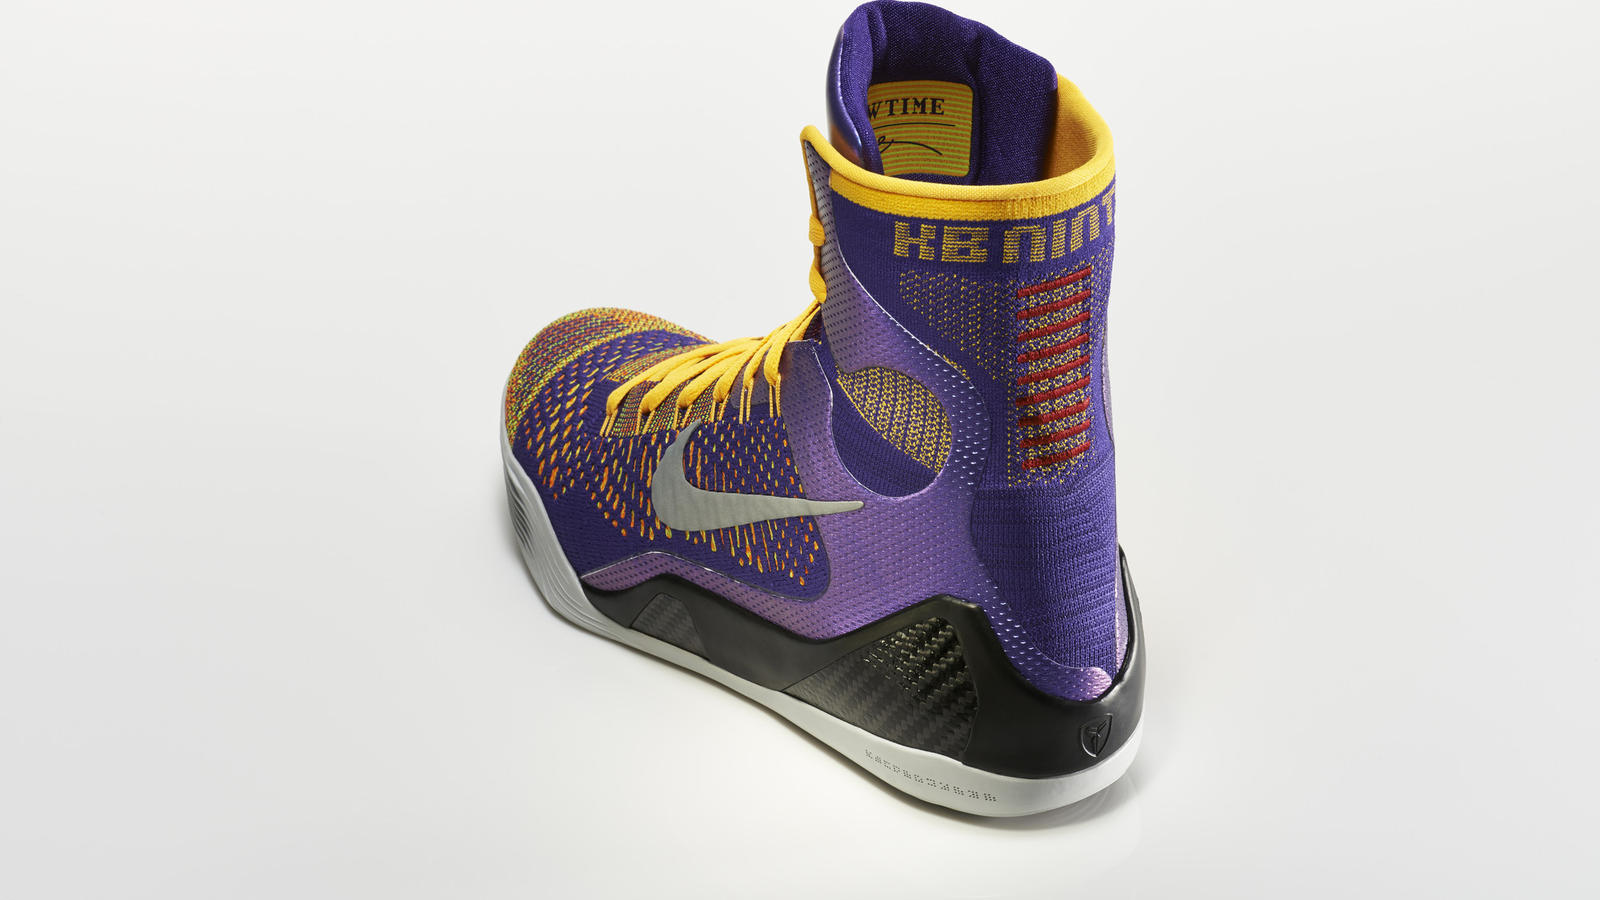 su14_bb_kobe9_elite_630847_500_return_3qtr_back_high_0240